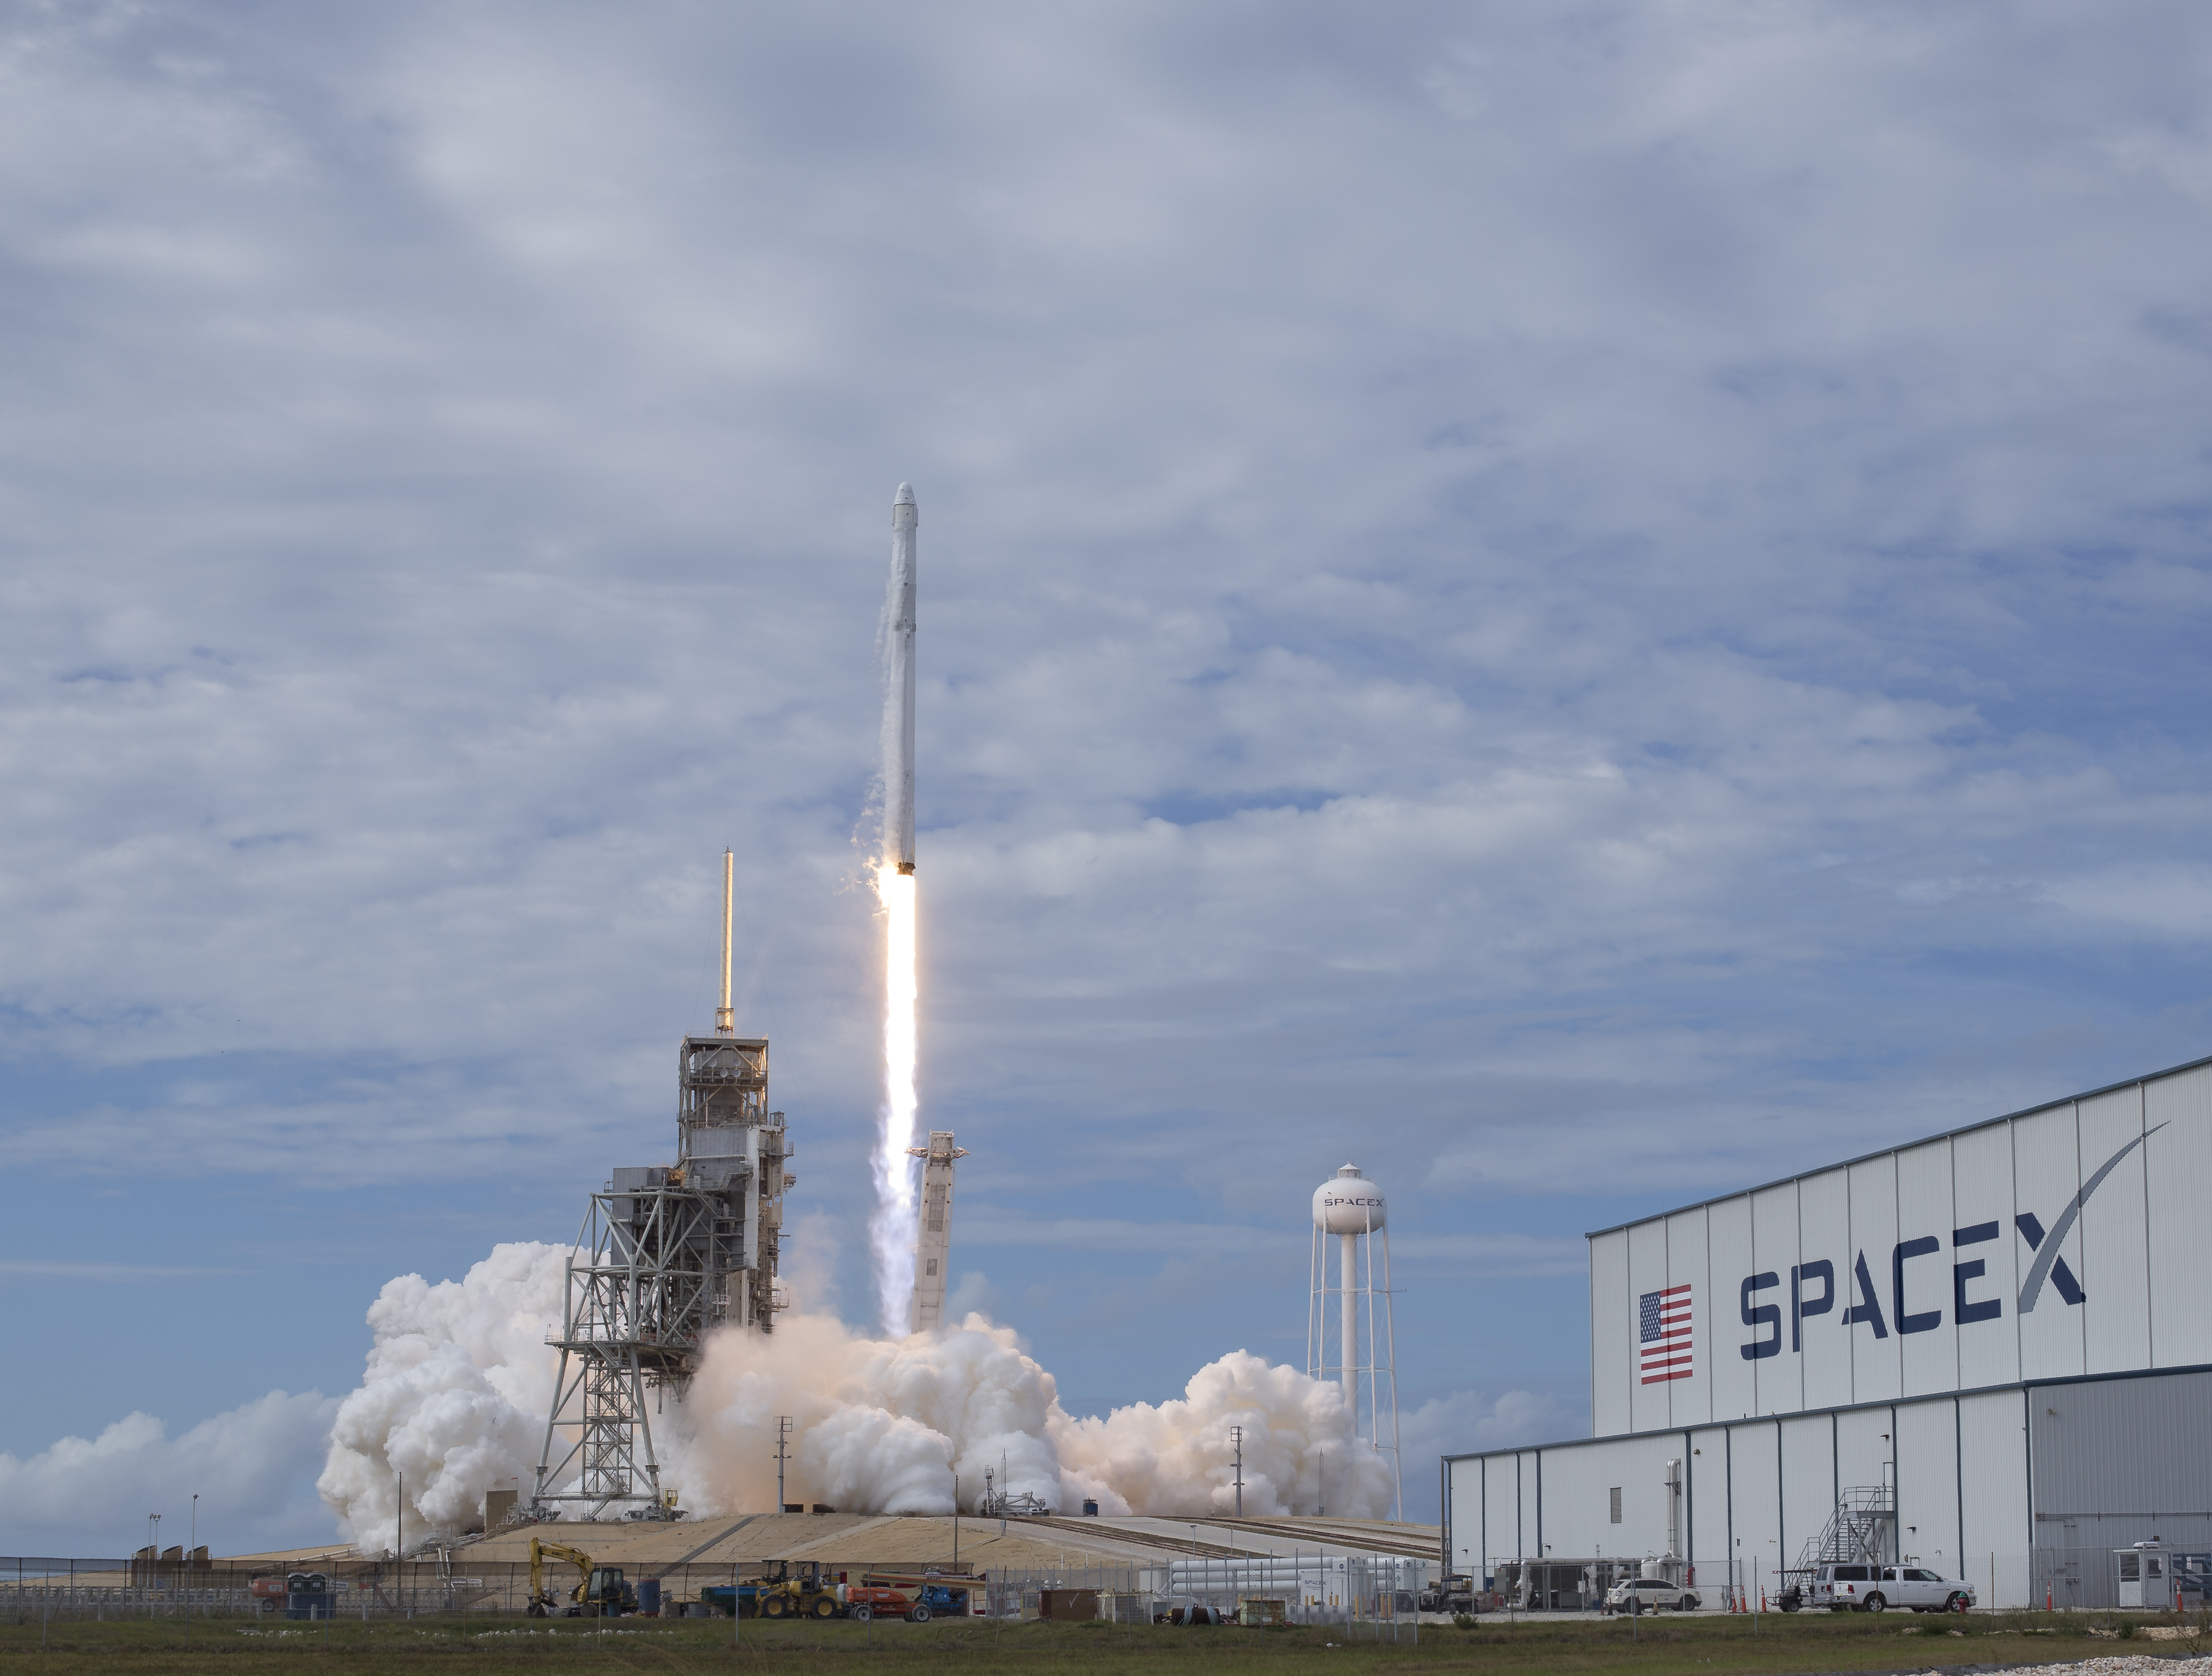 In this handout provided by NASA, a SpaceX Falcon 9 rocket launches from Kennedy Space Center on June 3, 2017.